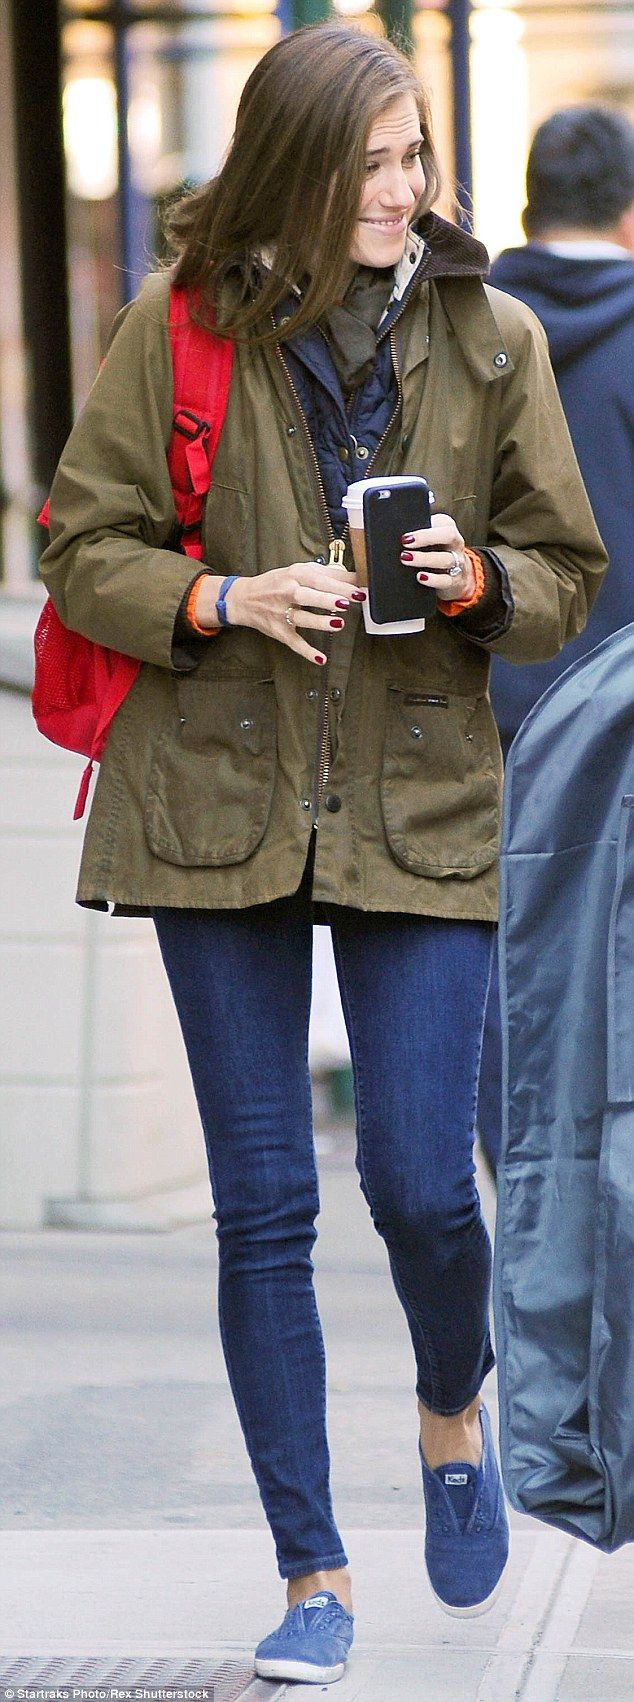 Allison Williams keeps it casual going make-up free in New York | Daily Mail Online